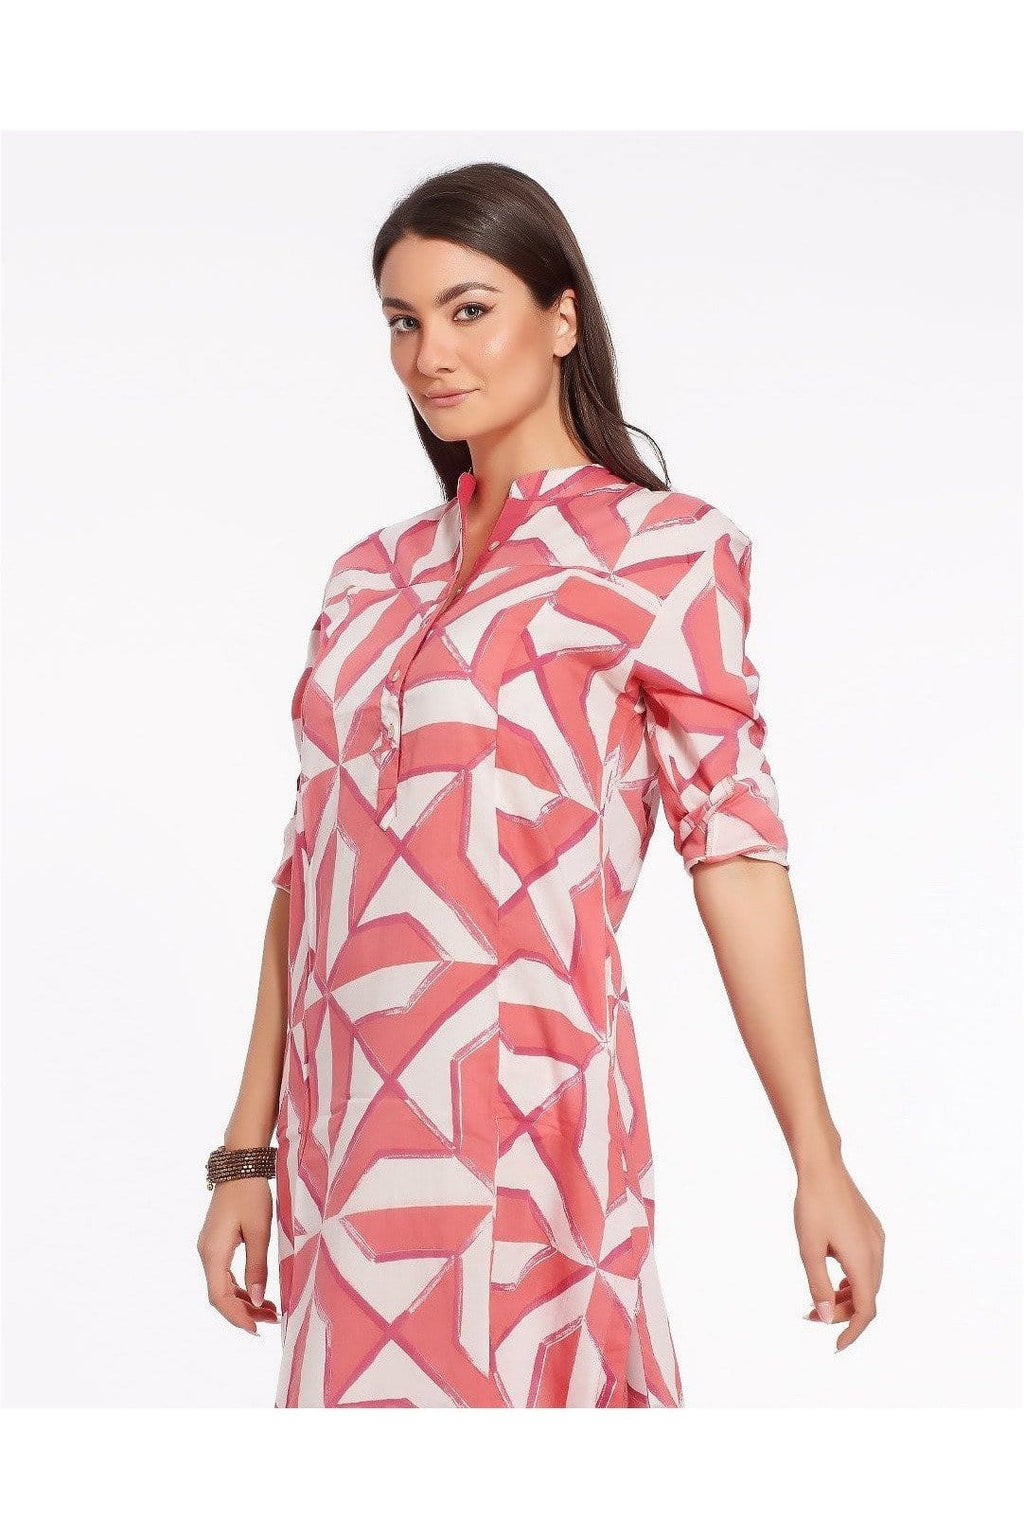 Long summer dress with geometrical print made in light cotton - JODHPUR - Himelhoch's